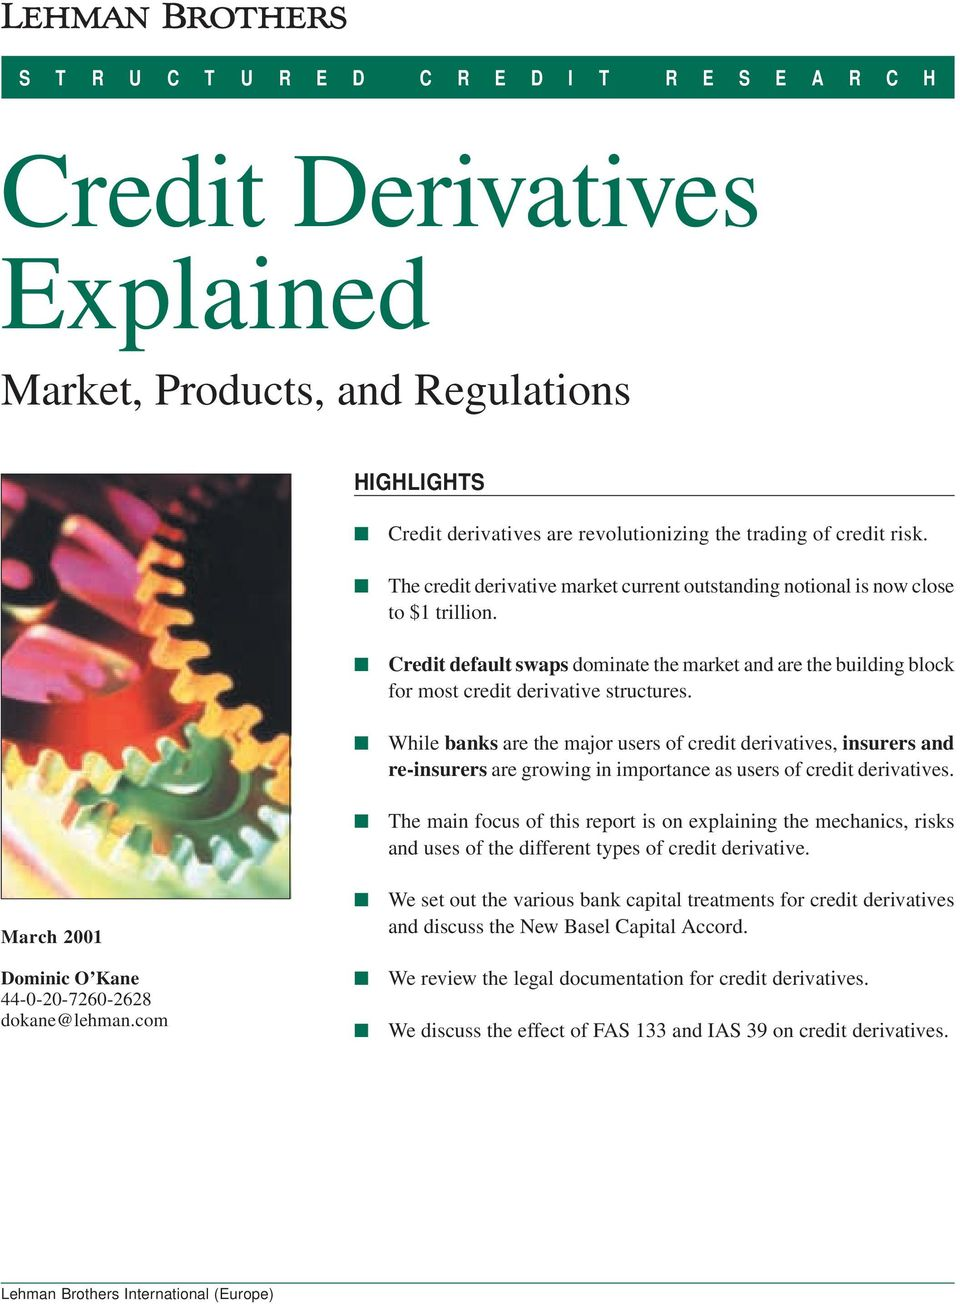 Credit default swaps dominate the market and are the building block for most credit derivative structures.